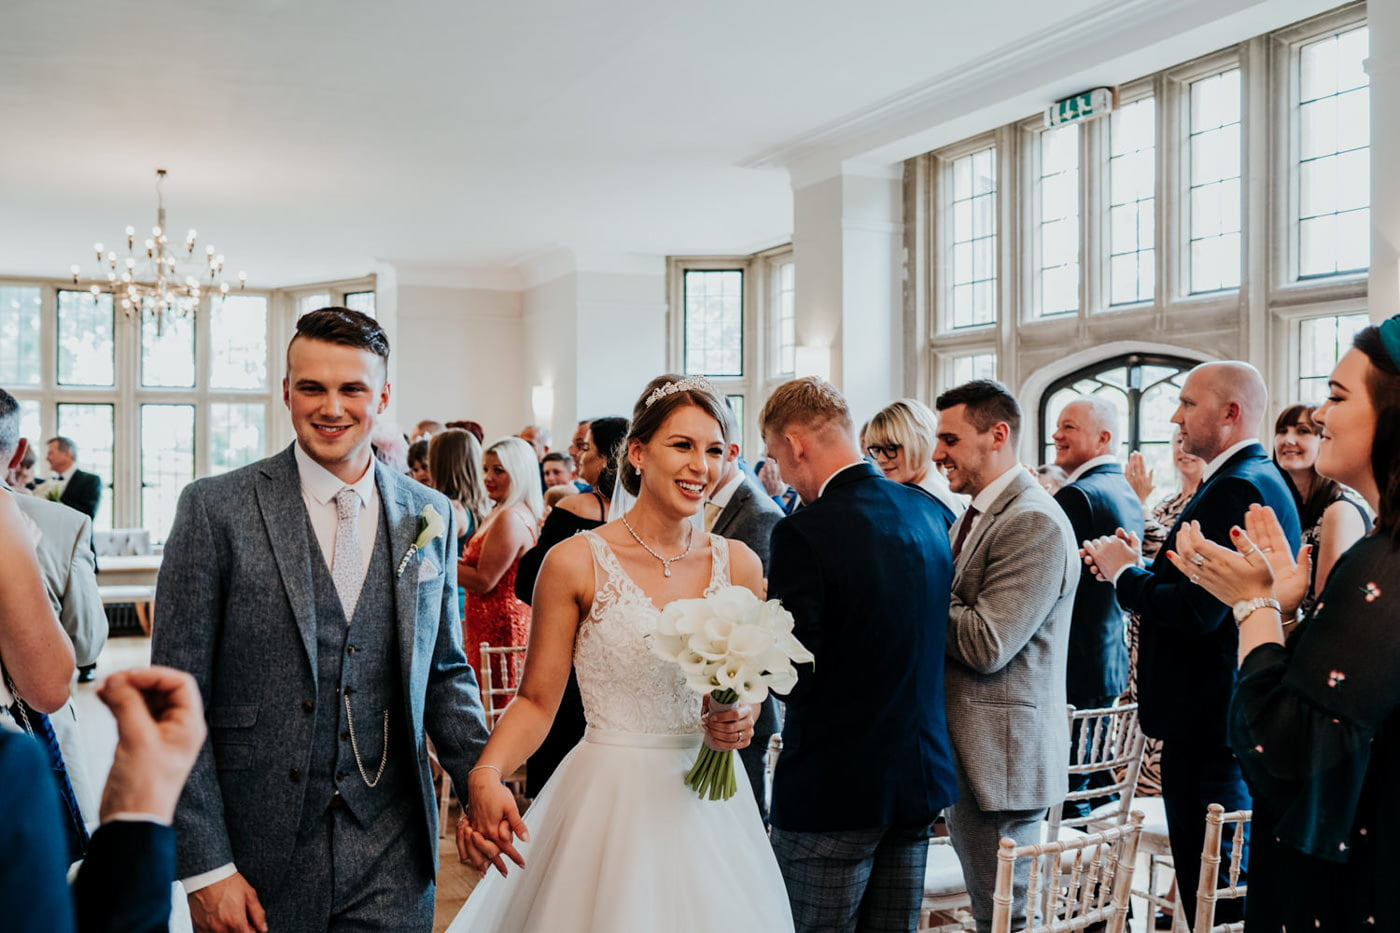 Char and Dexter, Coombe Lodge, Bristol 12